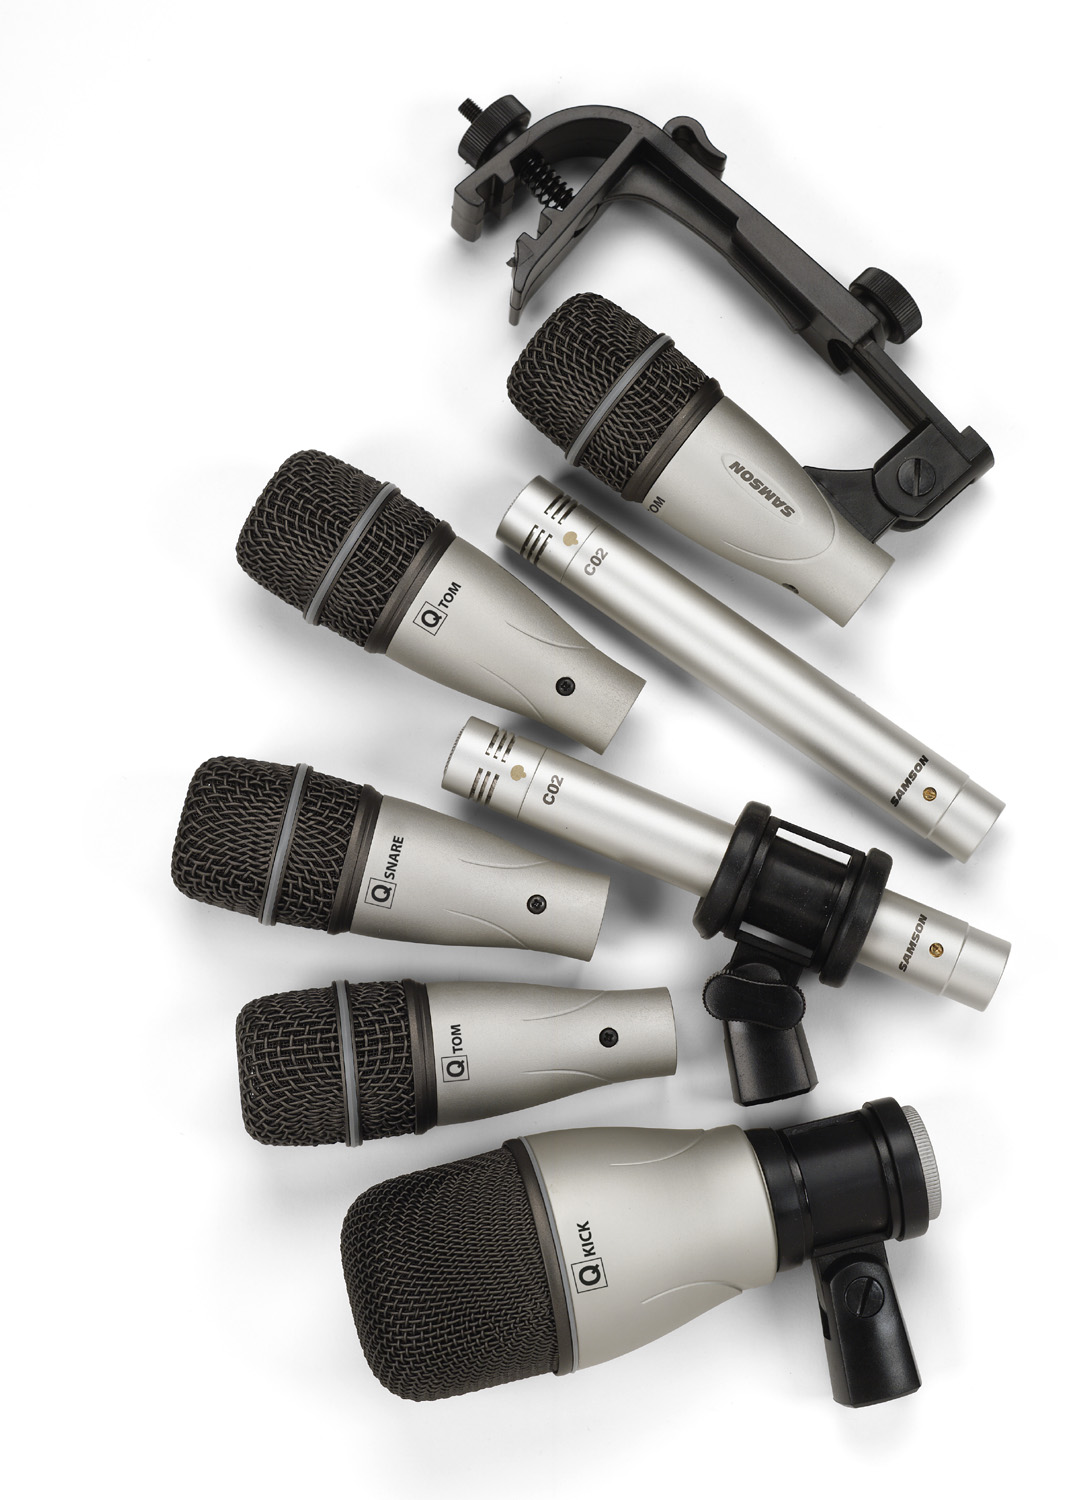 Samson 7kit 7-piece Drum Microphone Package Set at Sears.com